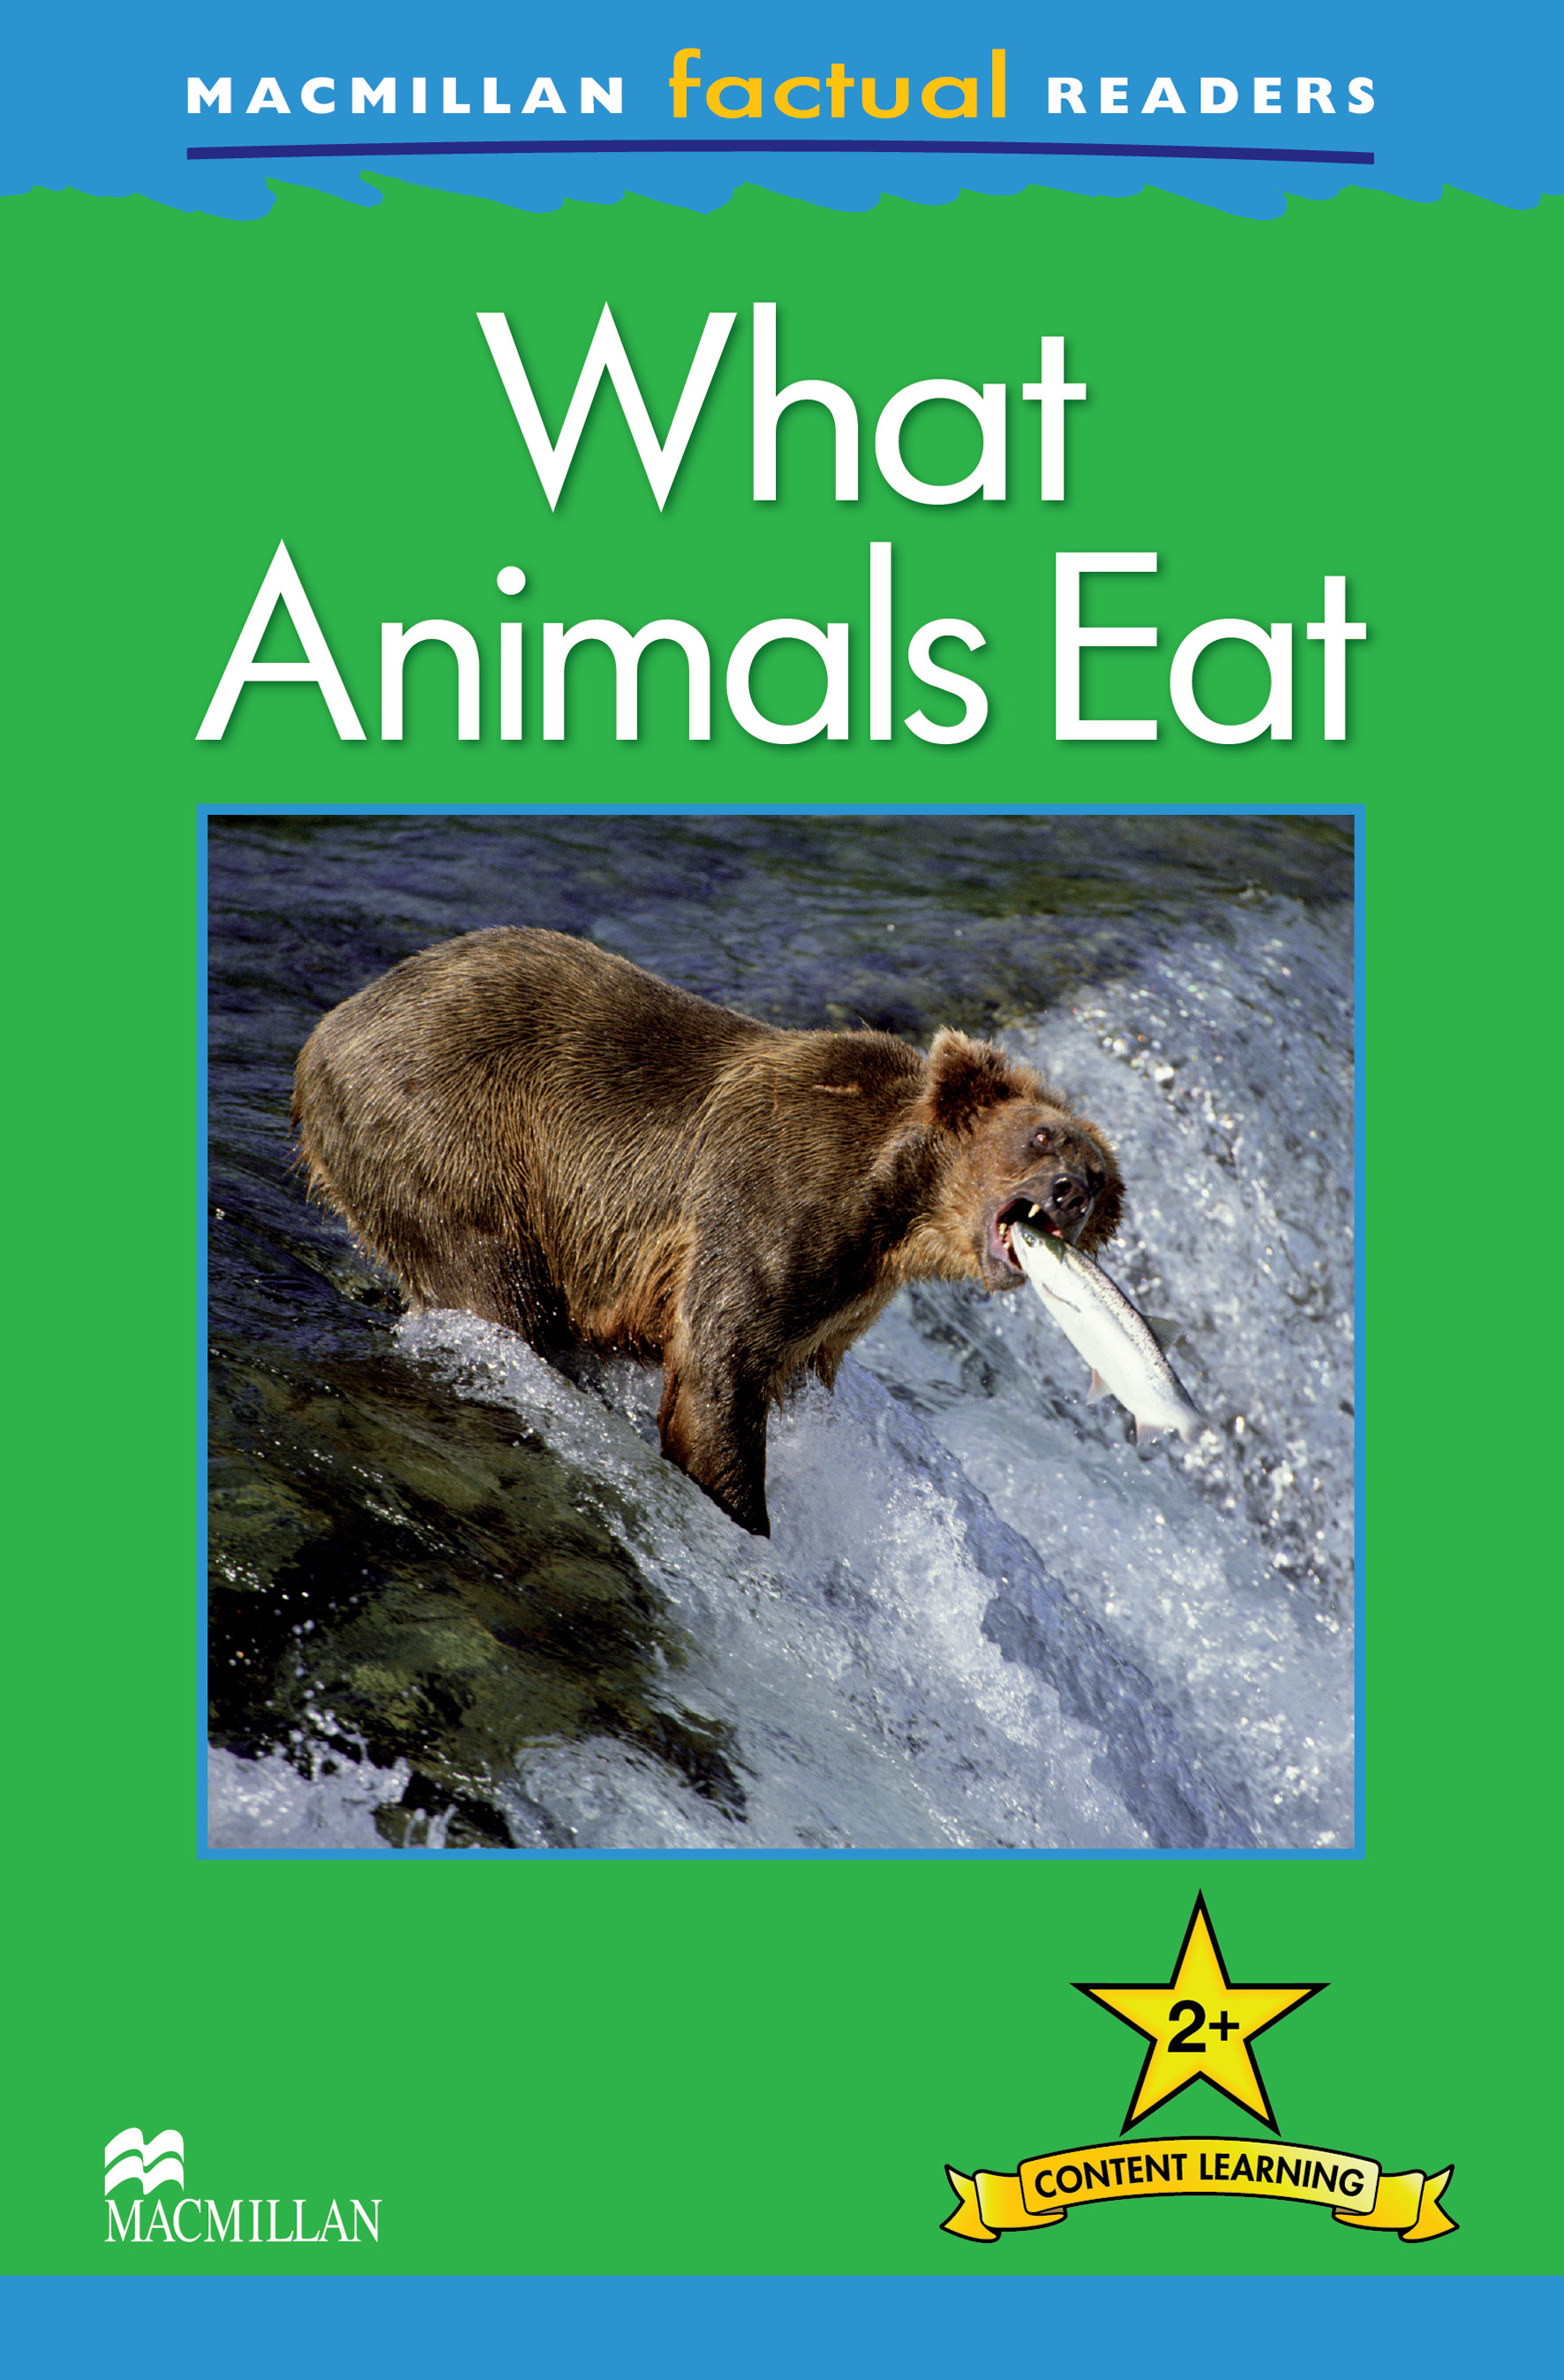 Macmillan Factual Readers: What Animals Eat